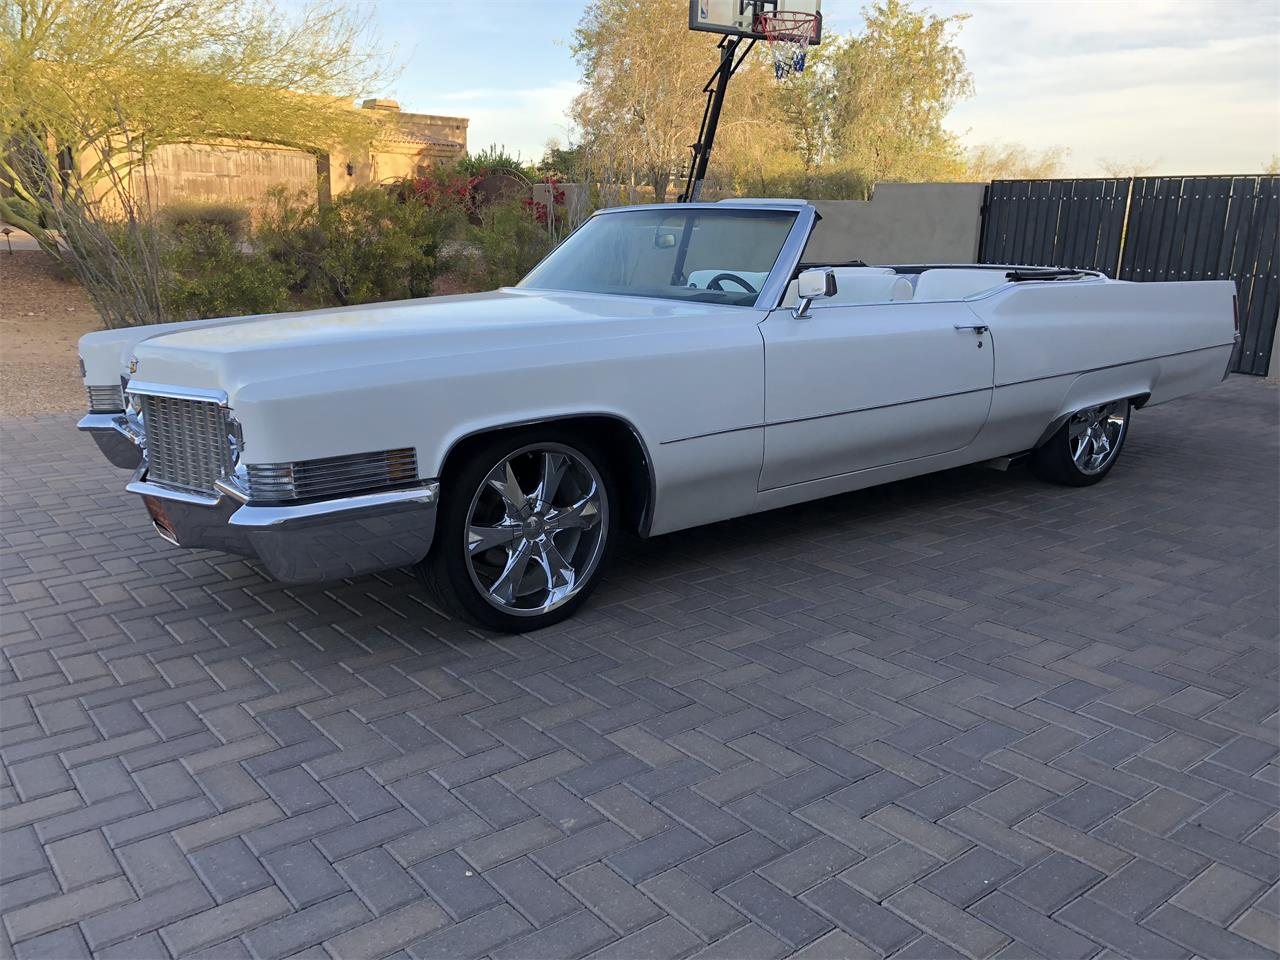 Large Picture of 1970 DeVille located in Scottsdale Arizona Offered by a Private Seller - N2JC